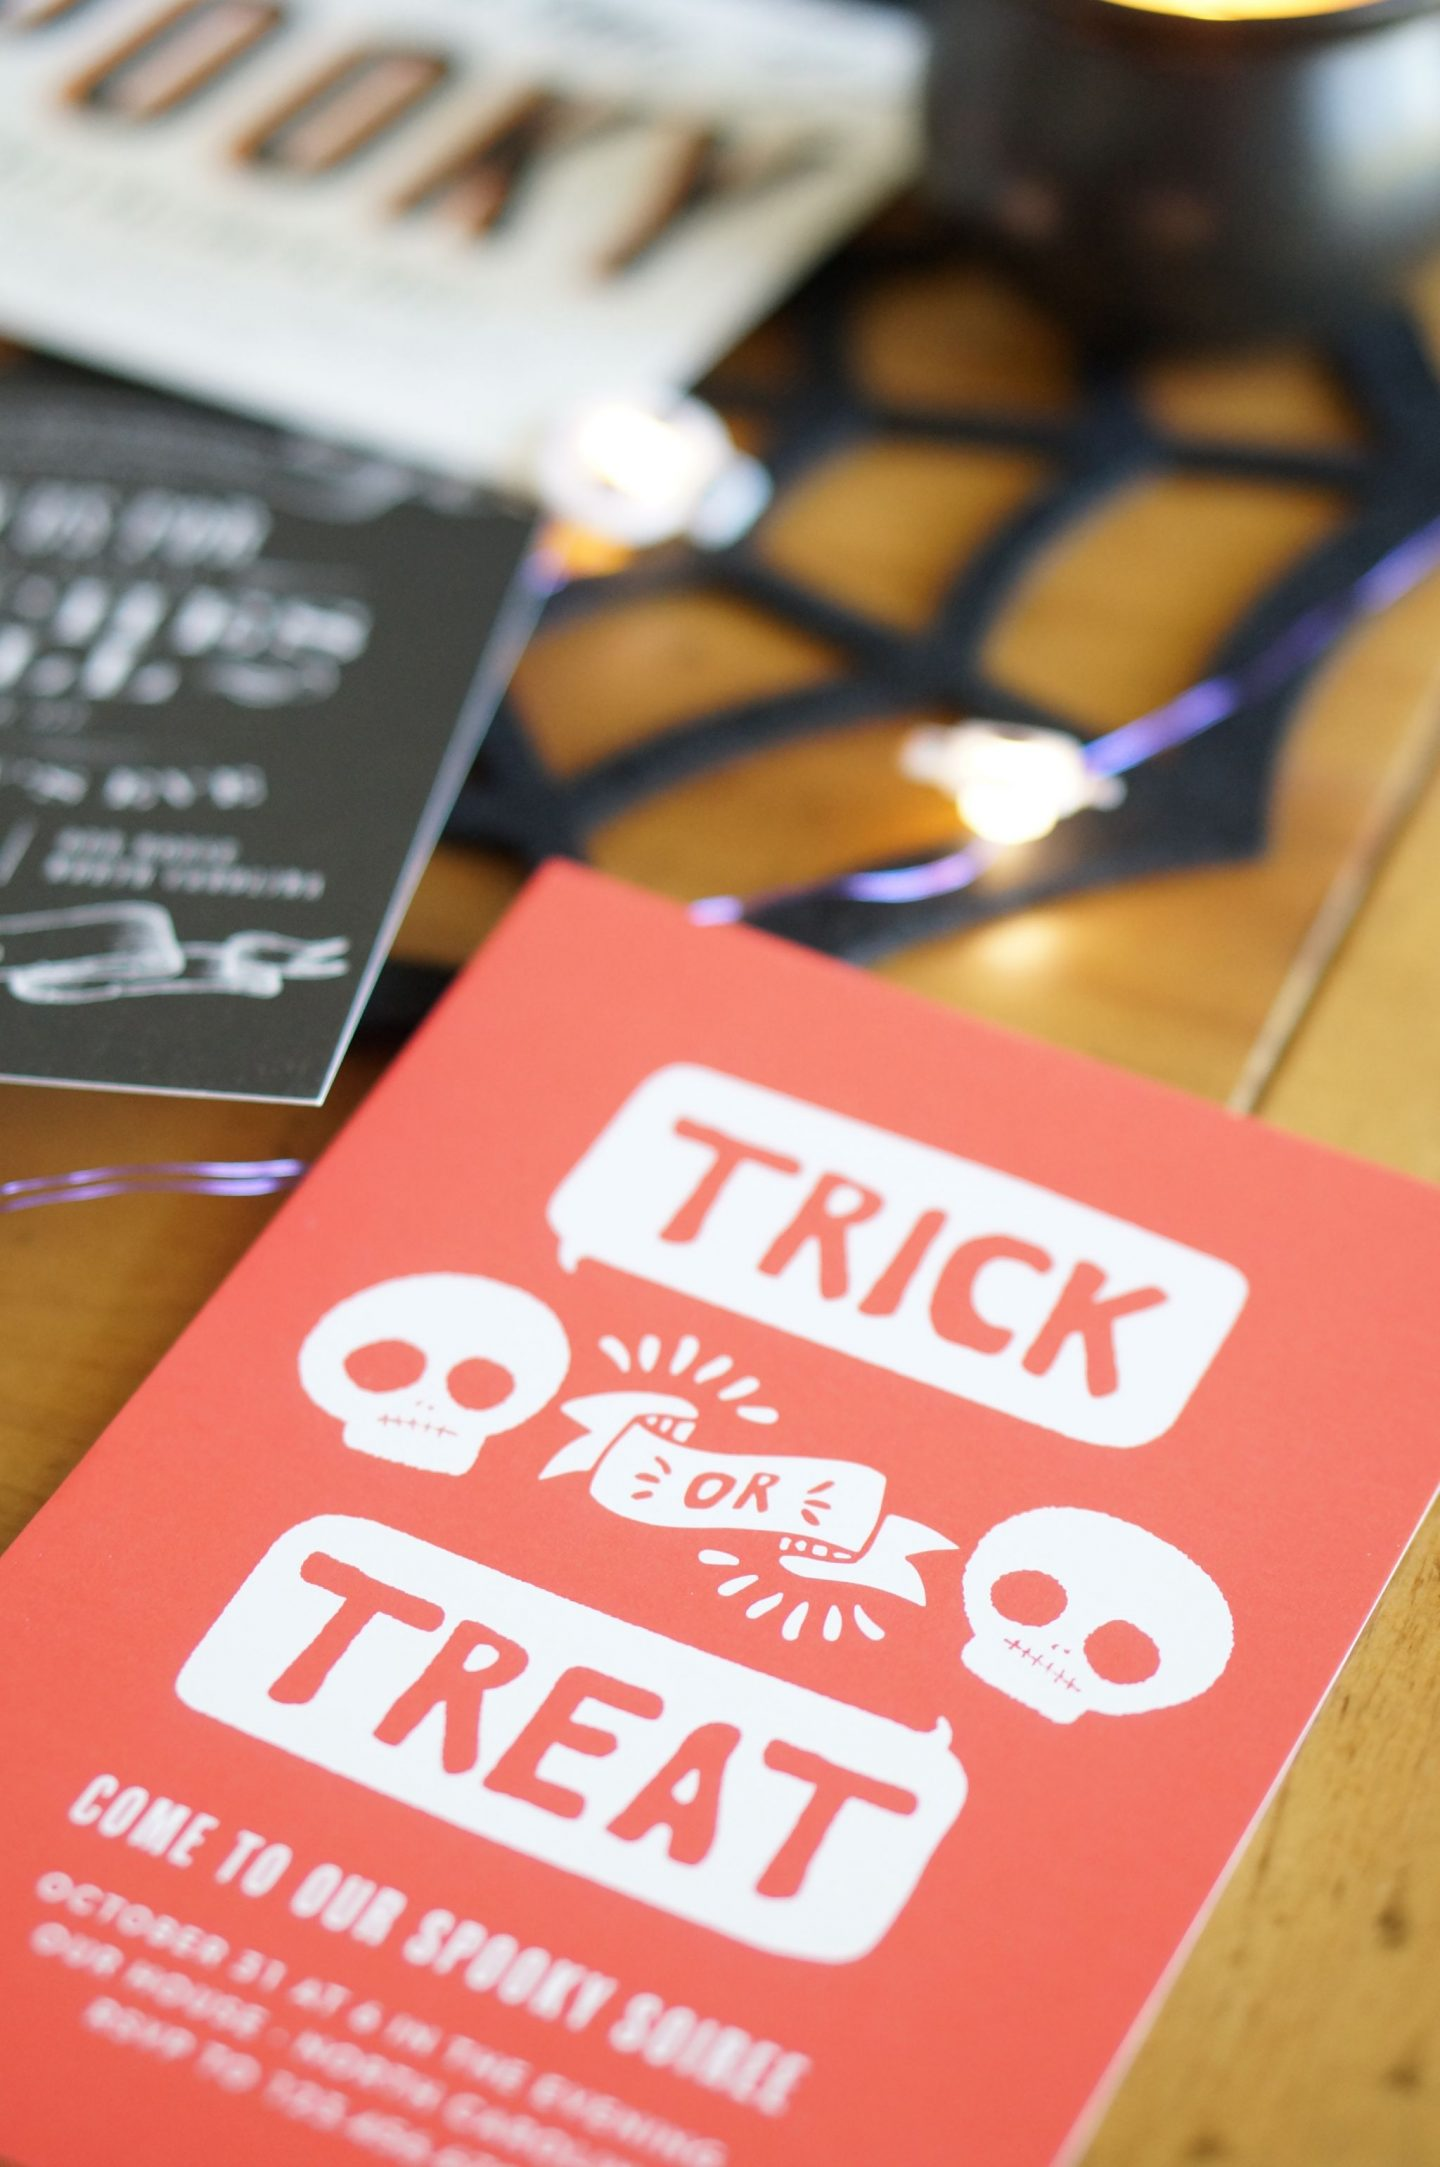 Popular North Carolina style blogger shares her halloween party invitations with Basic Invite. Check out the invites for her pumpkin carving party!